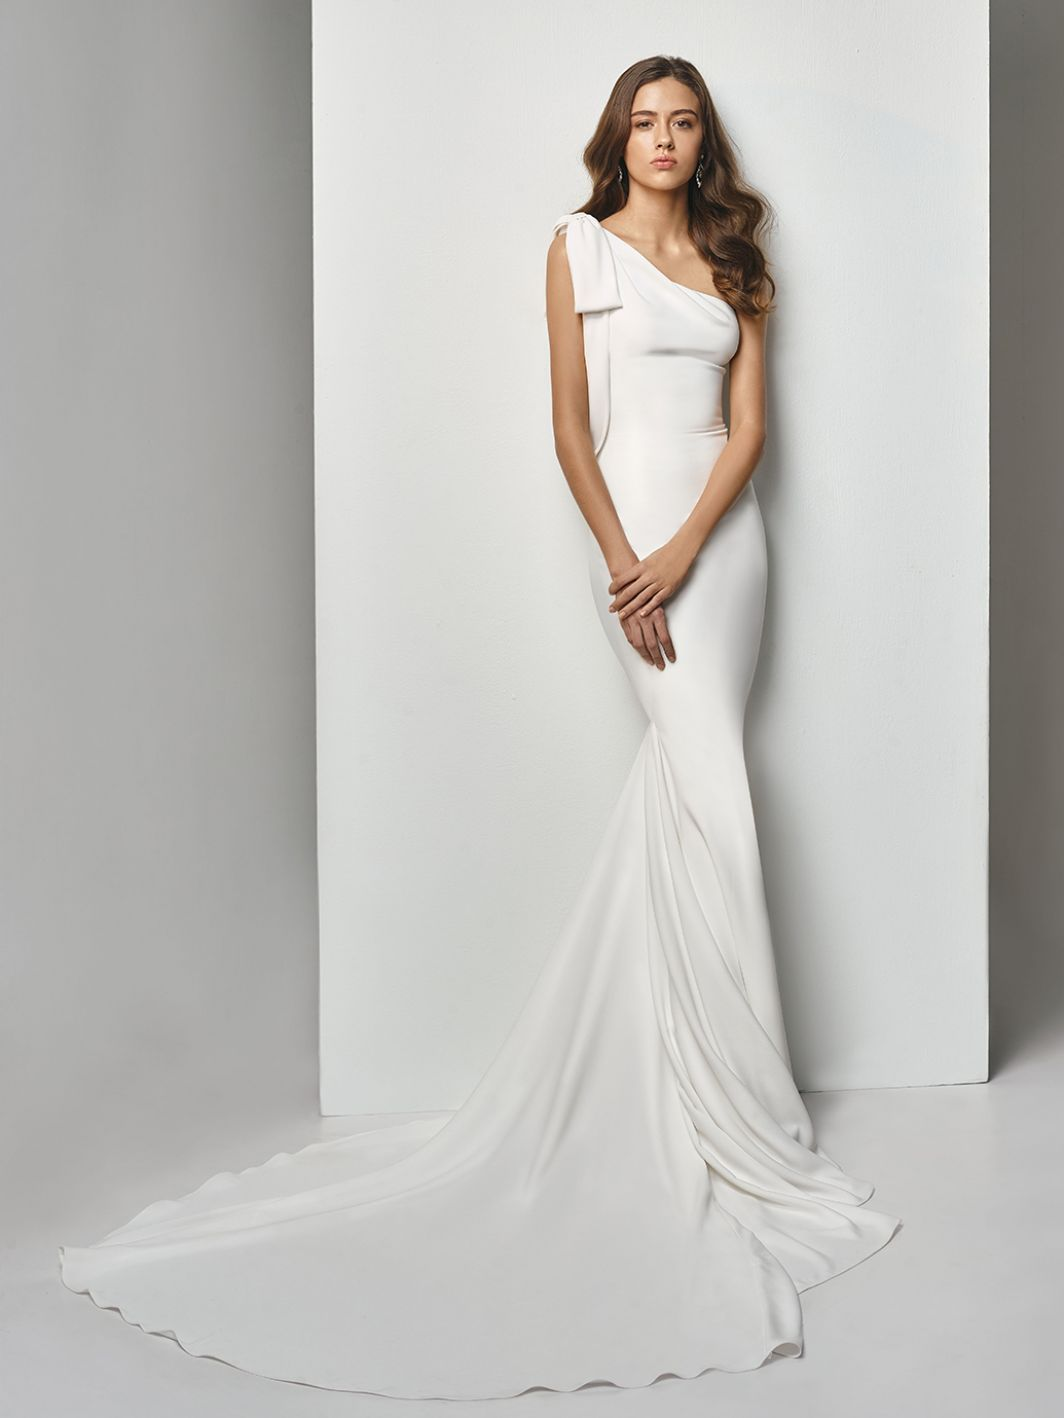 Mermaid Wedding Dress For The Minimalist Bride Looking For A Sleek And Simple Gown Bt19 Enzoani Wedding Dresses Size 12 Wedding Dress Stunning Wedding Dresses